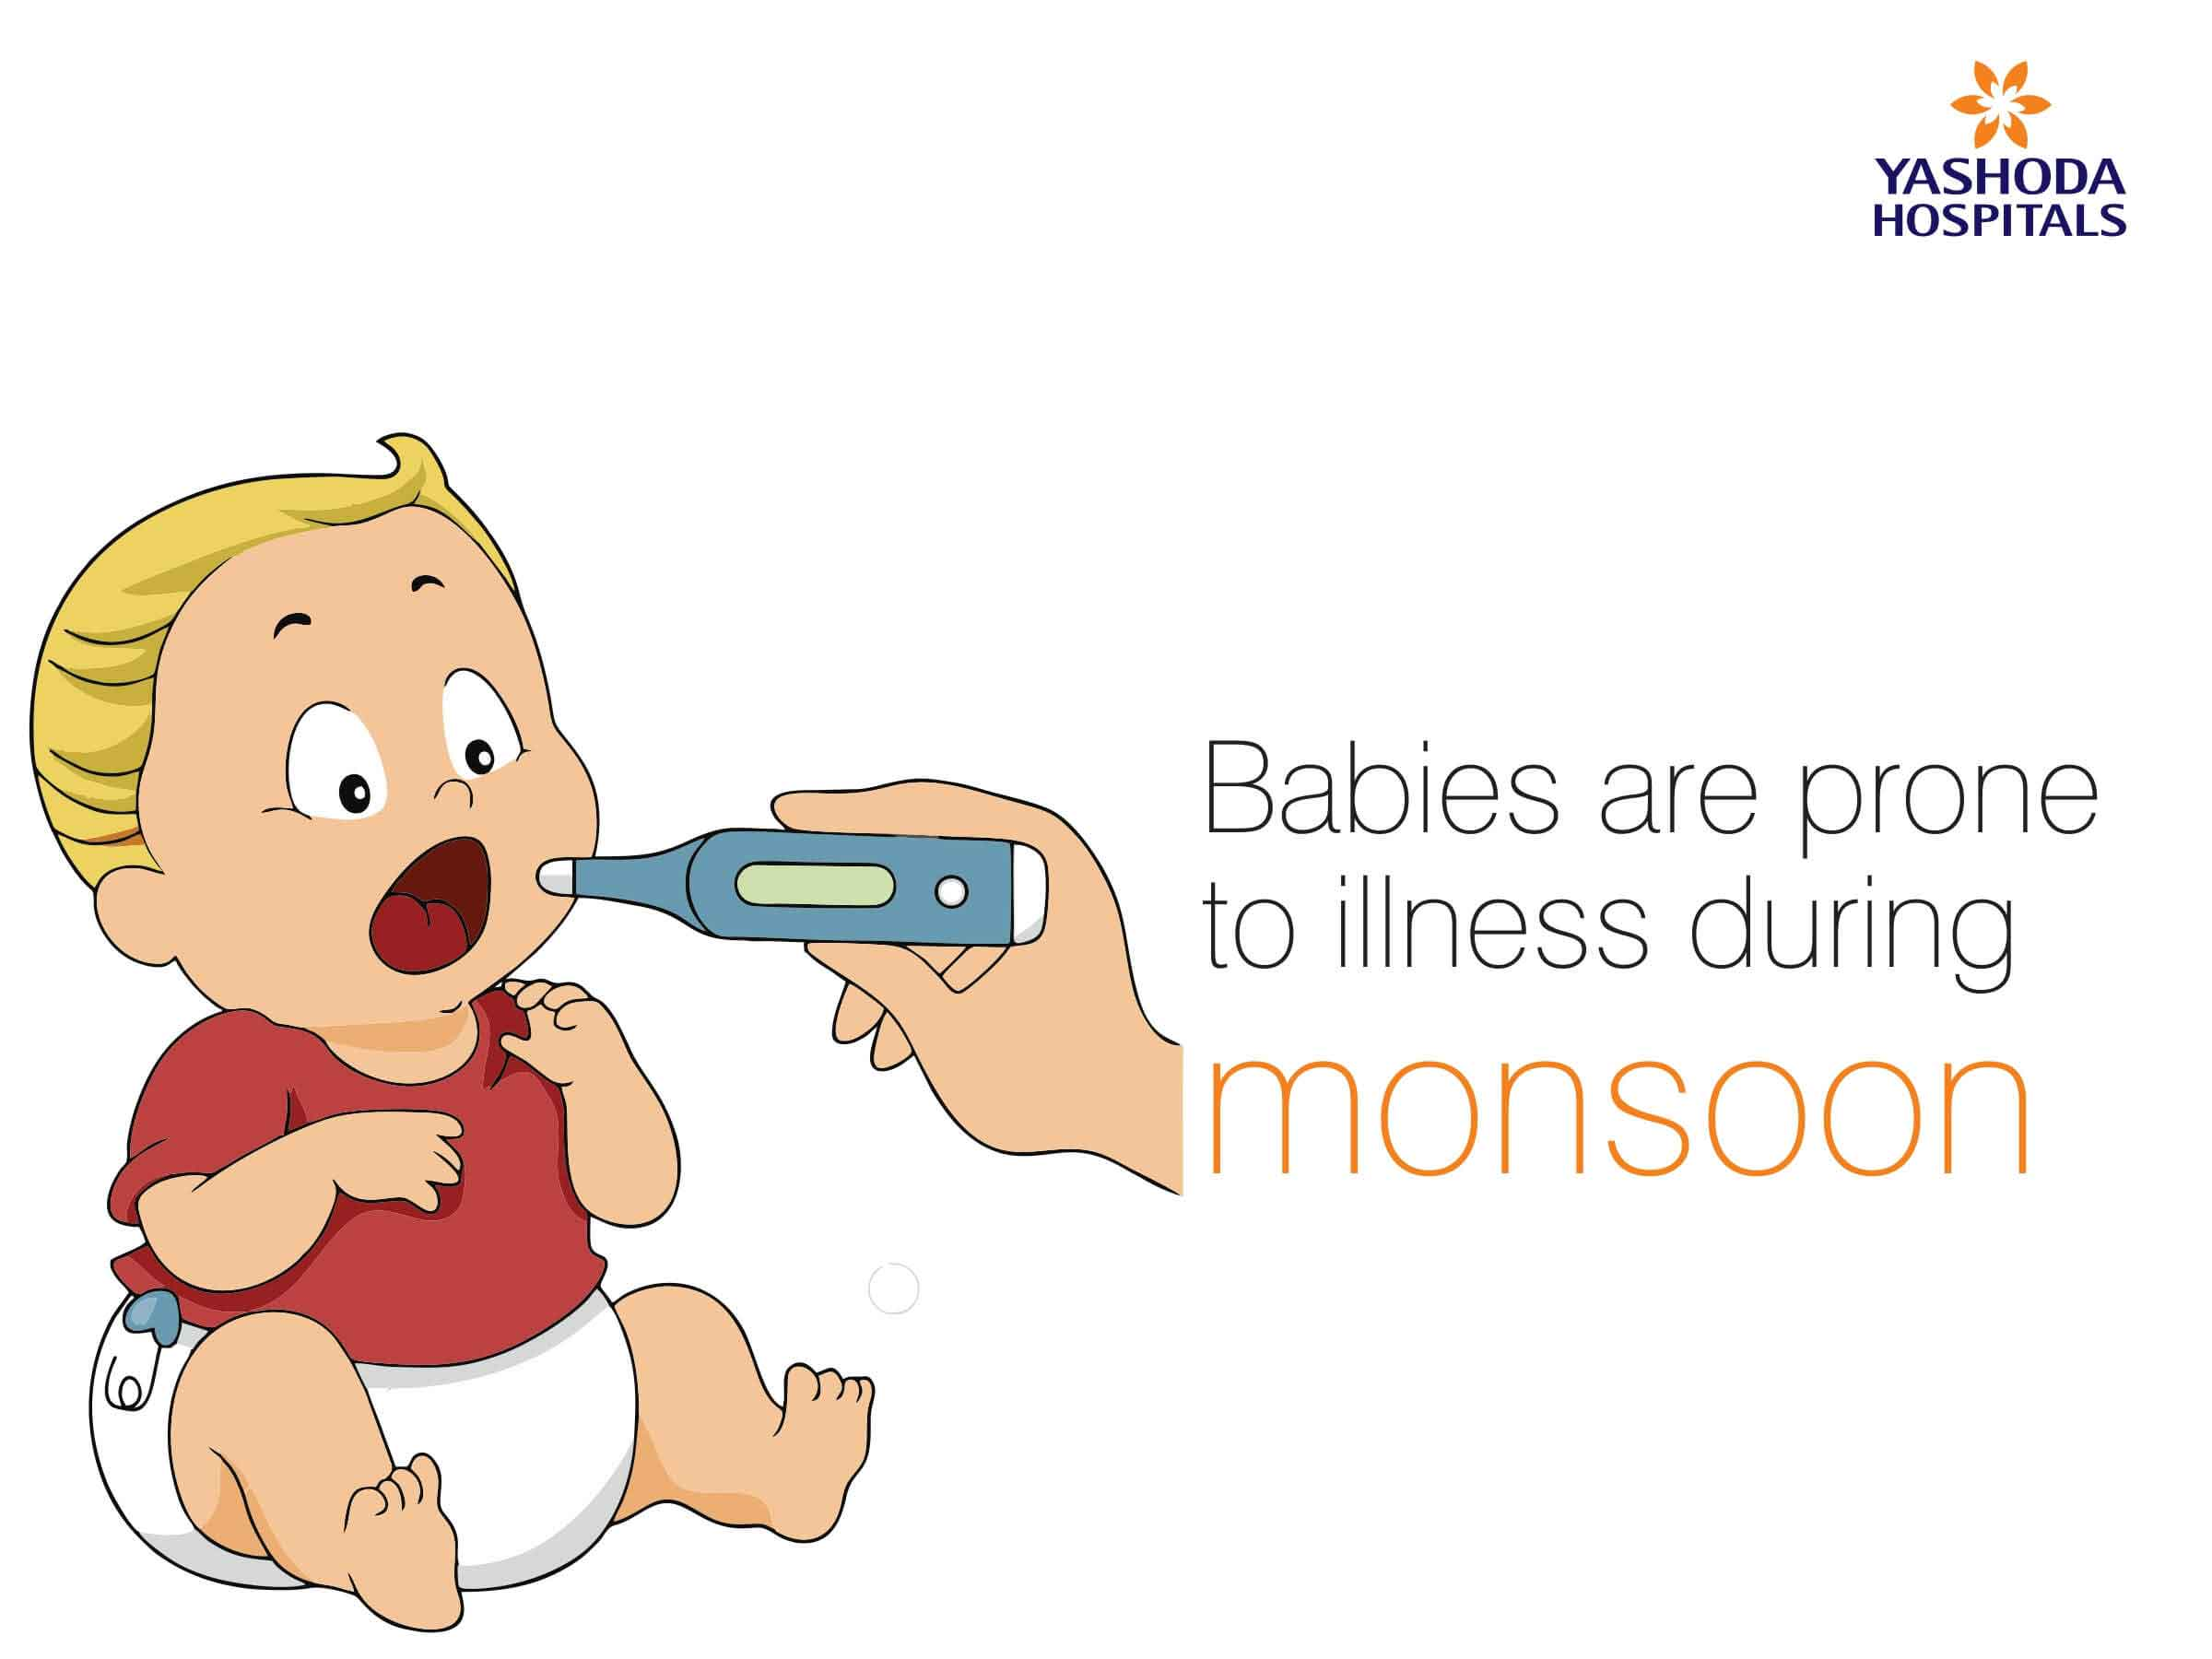 Common infections among babies Mansoon